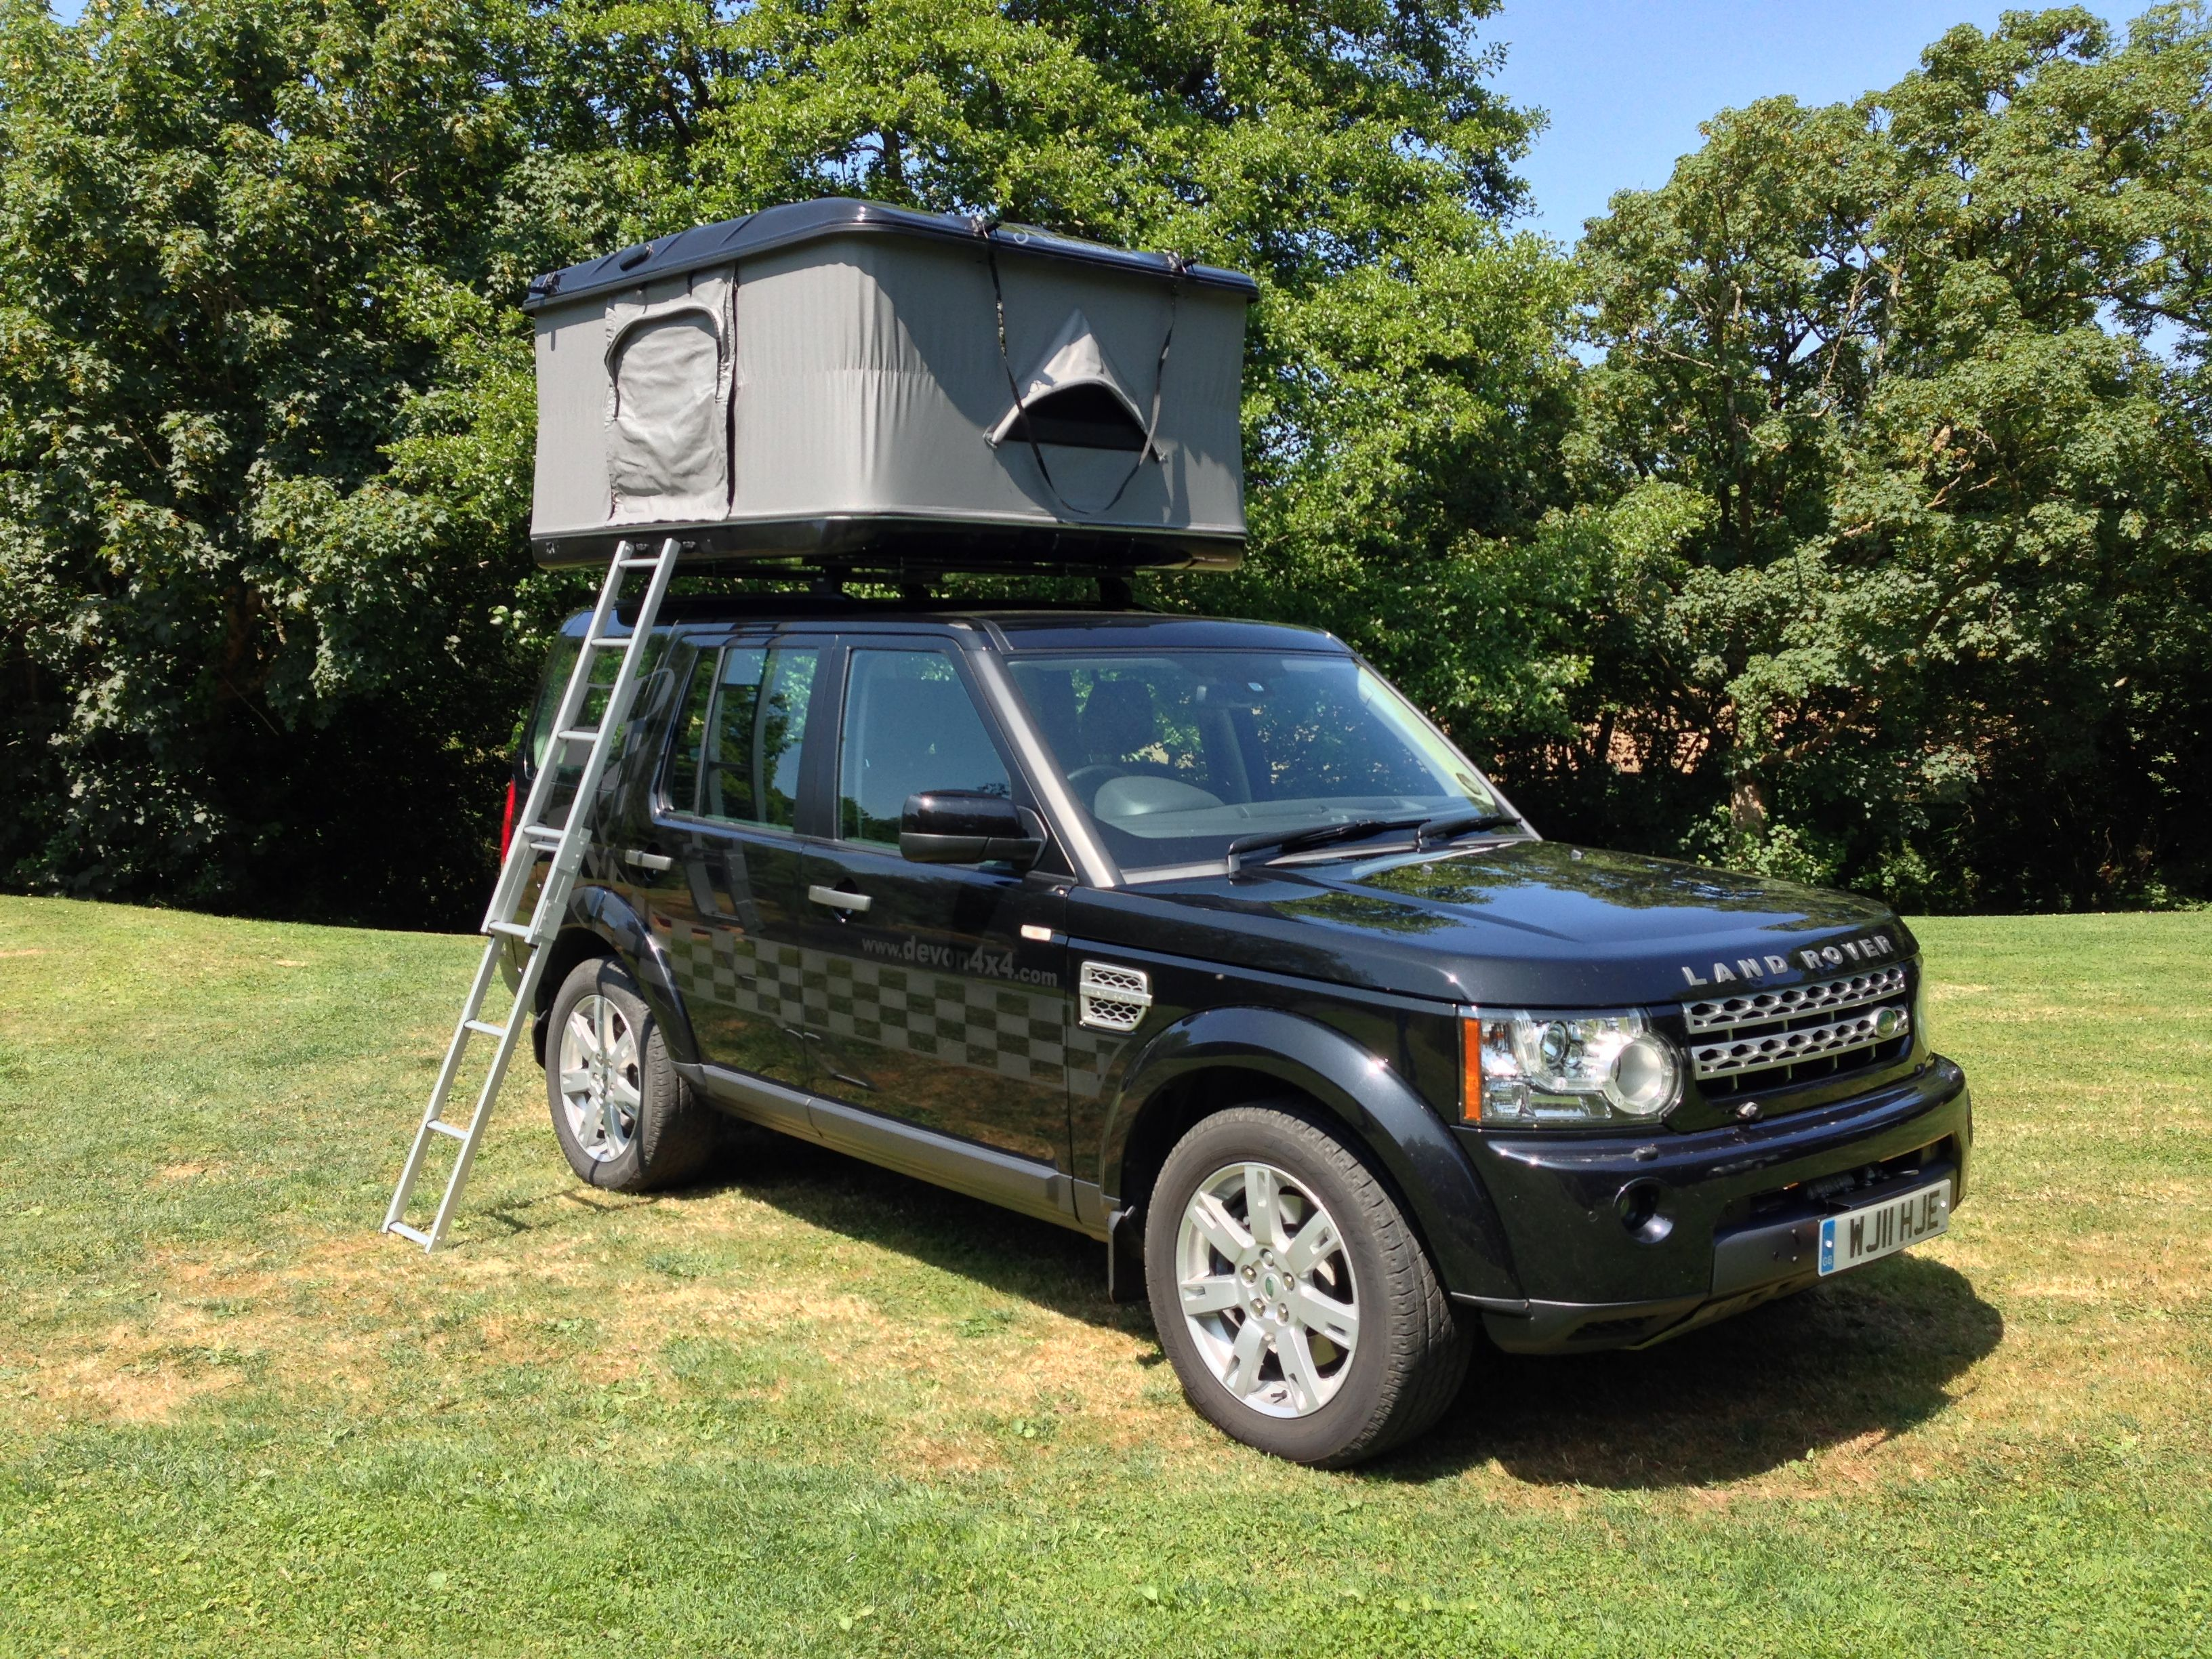 landrover views click options hd system package all surround size rover larger attachment camera lux version rare automobiles hse land name img for forums sale image